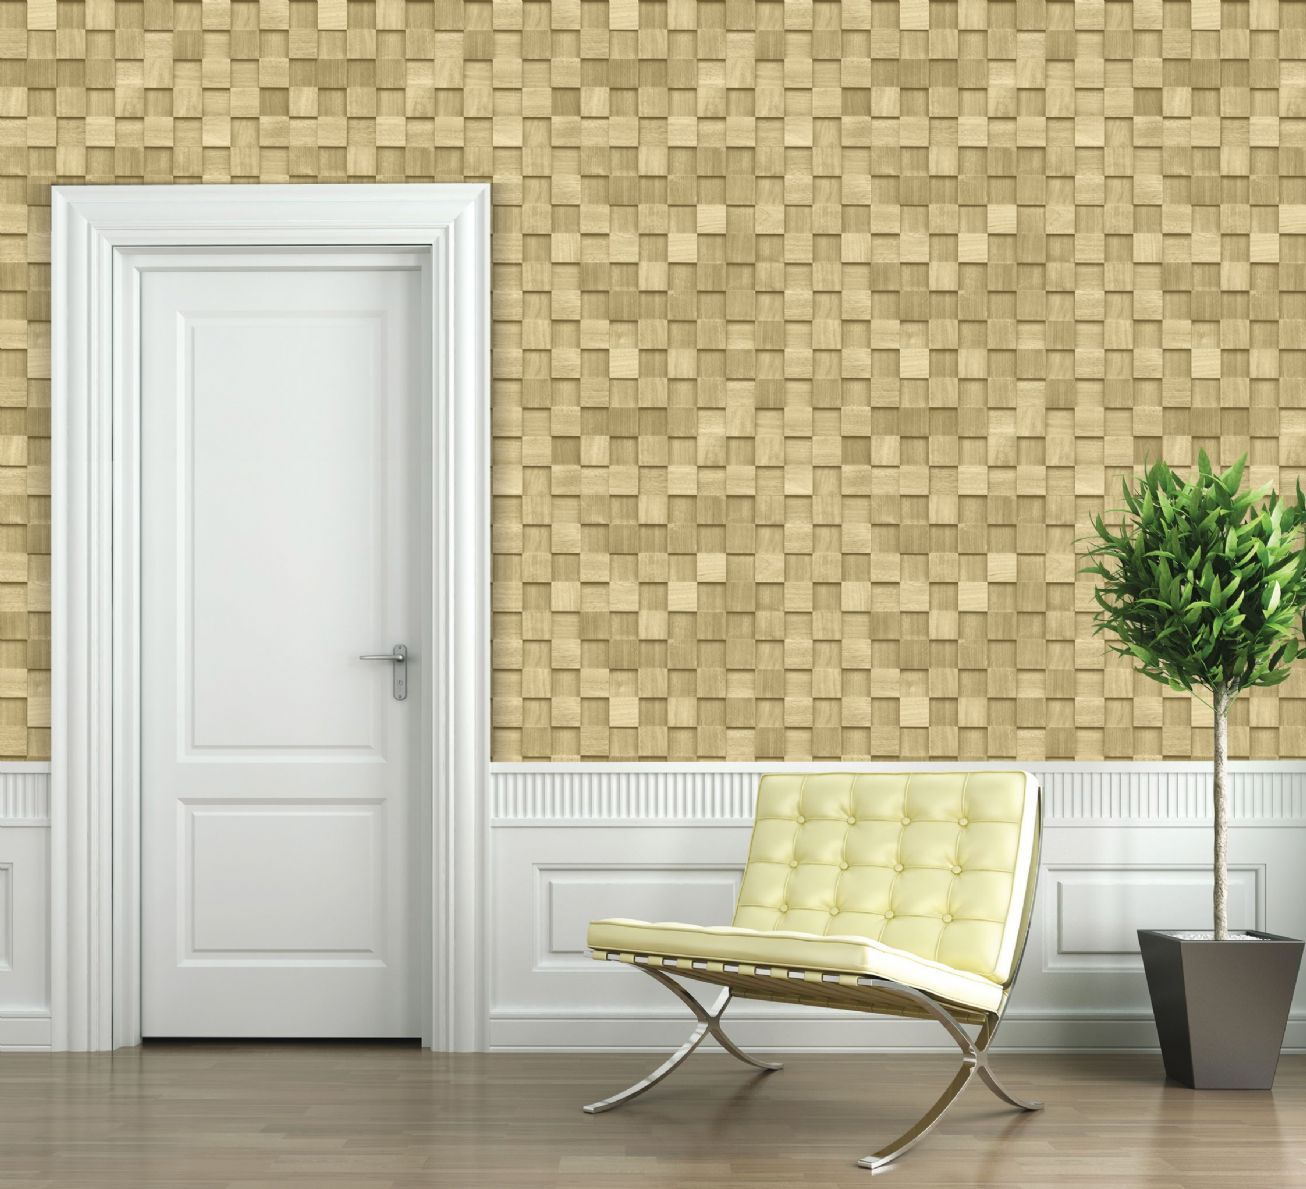 Do It Yourself Peel And Stick Wall Tiles For Your Space Decoration ...